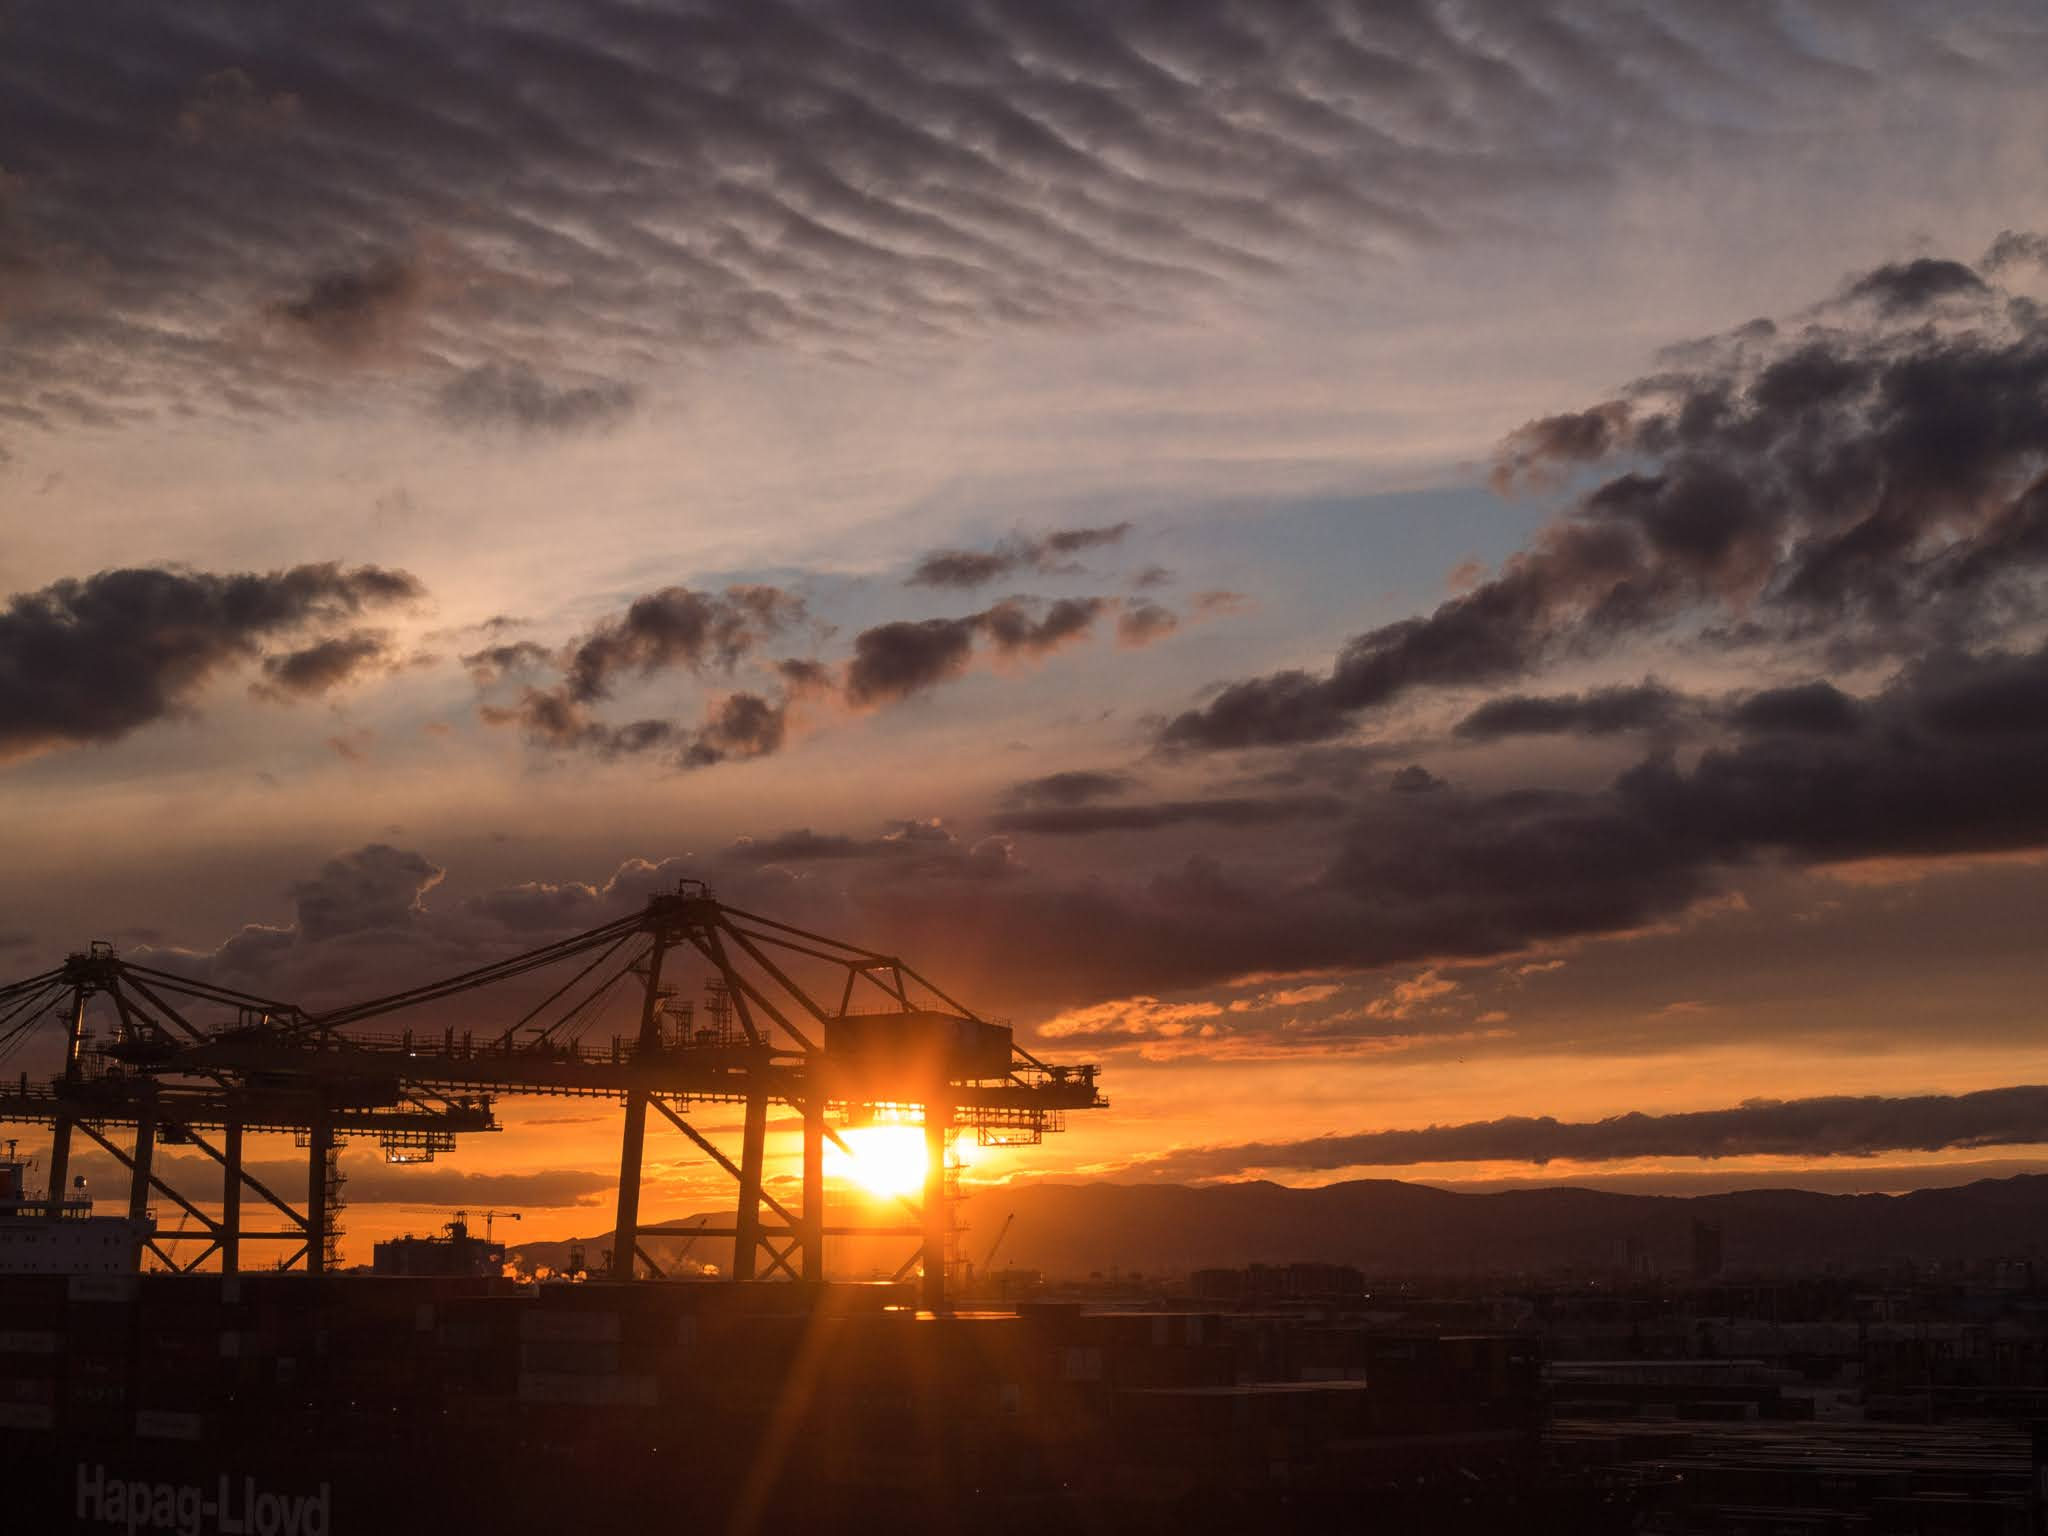 Sun shining through a gantry crane in the port of Barcelona during sunset.